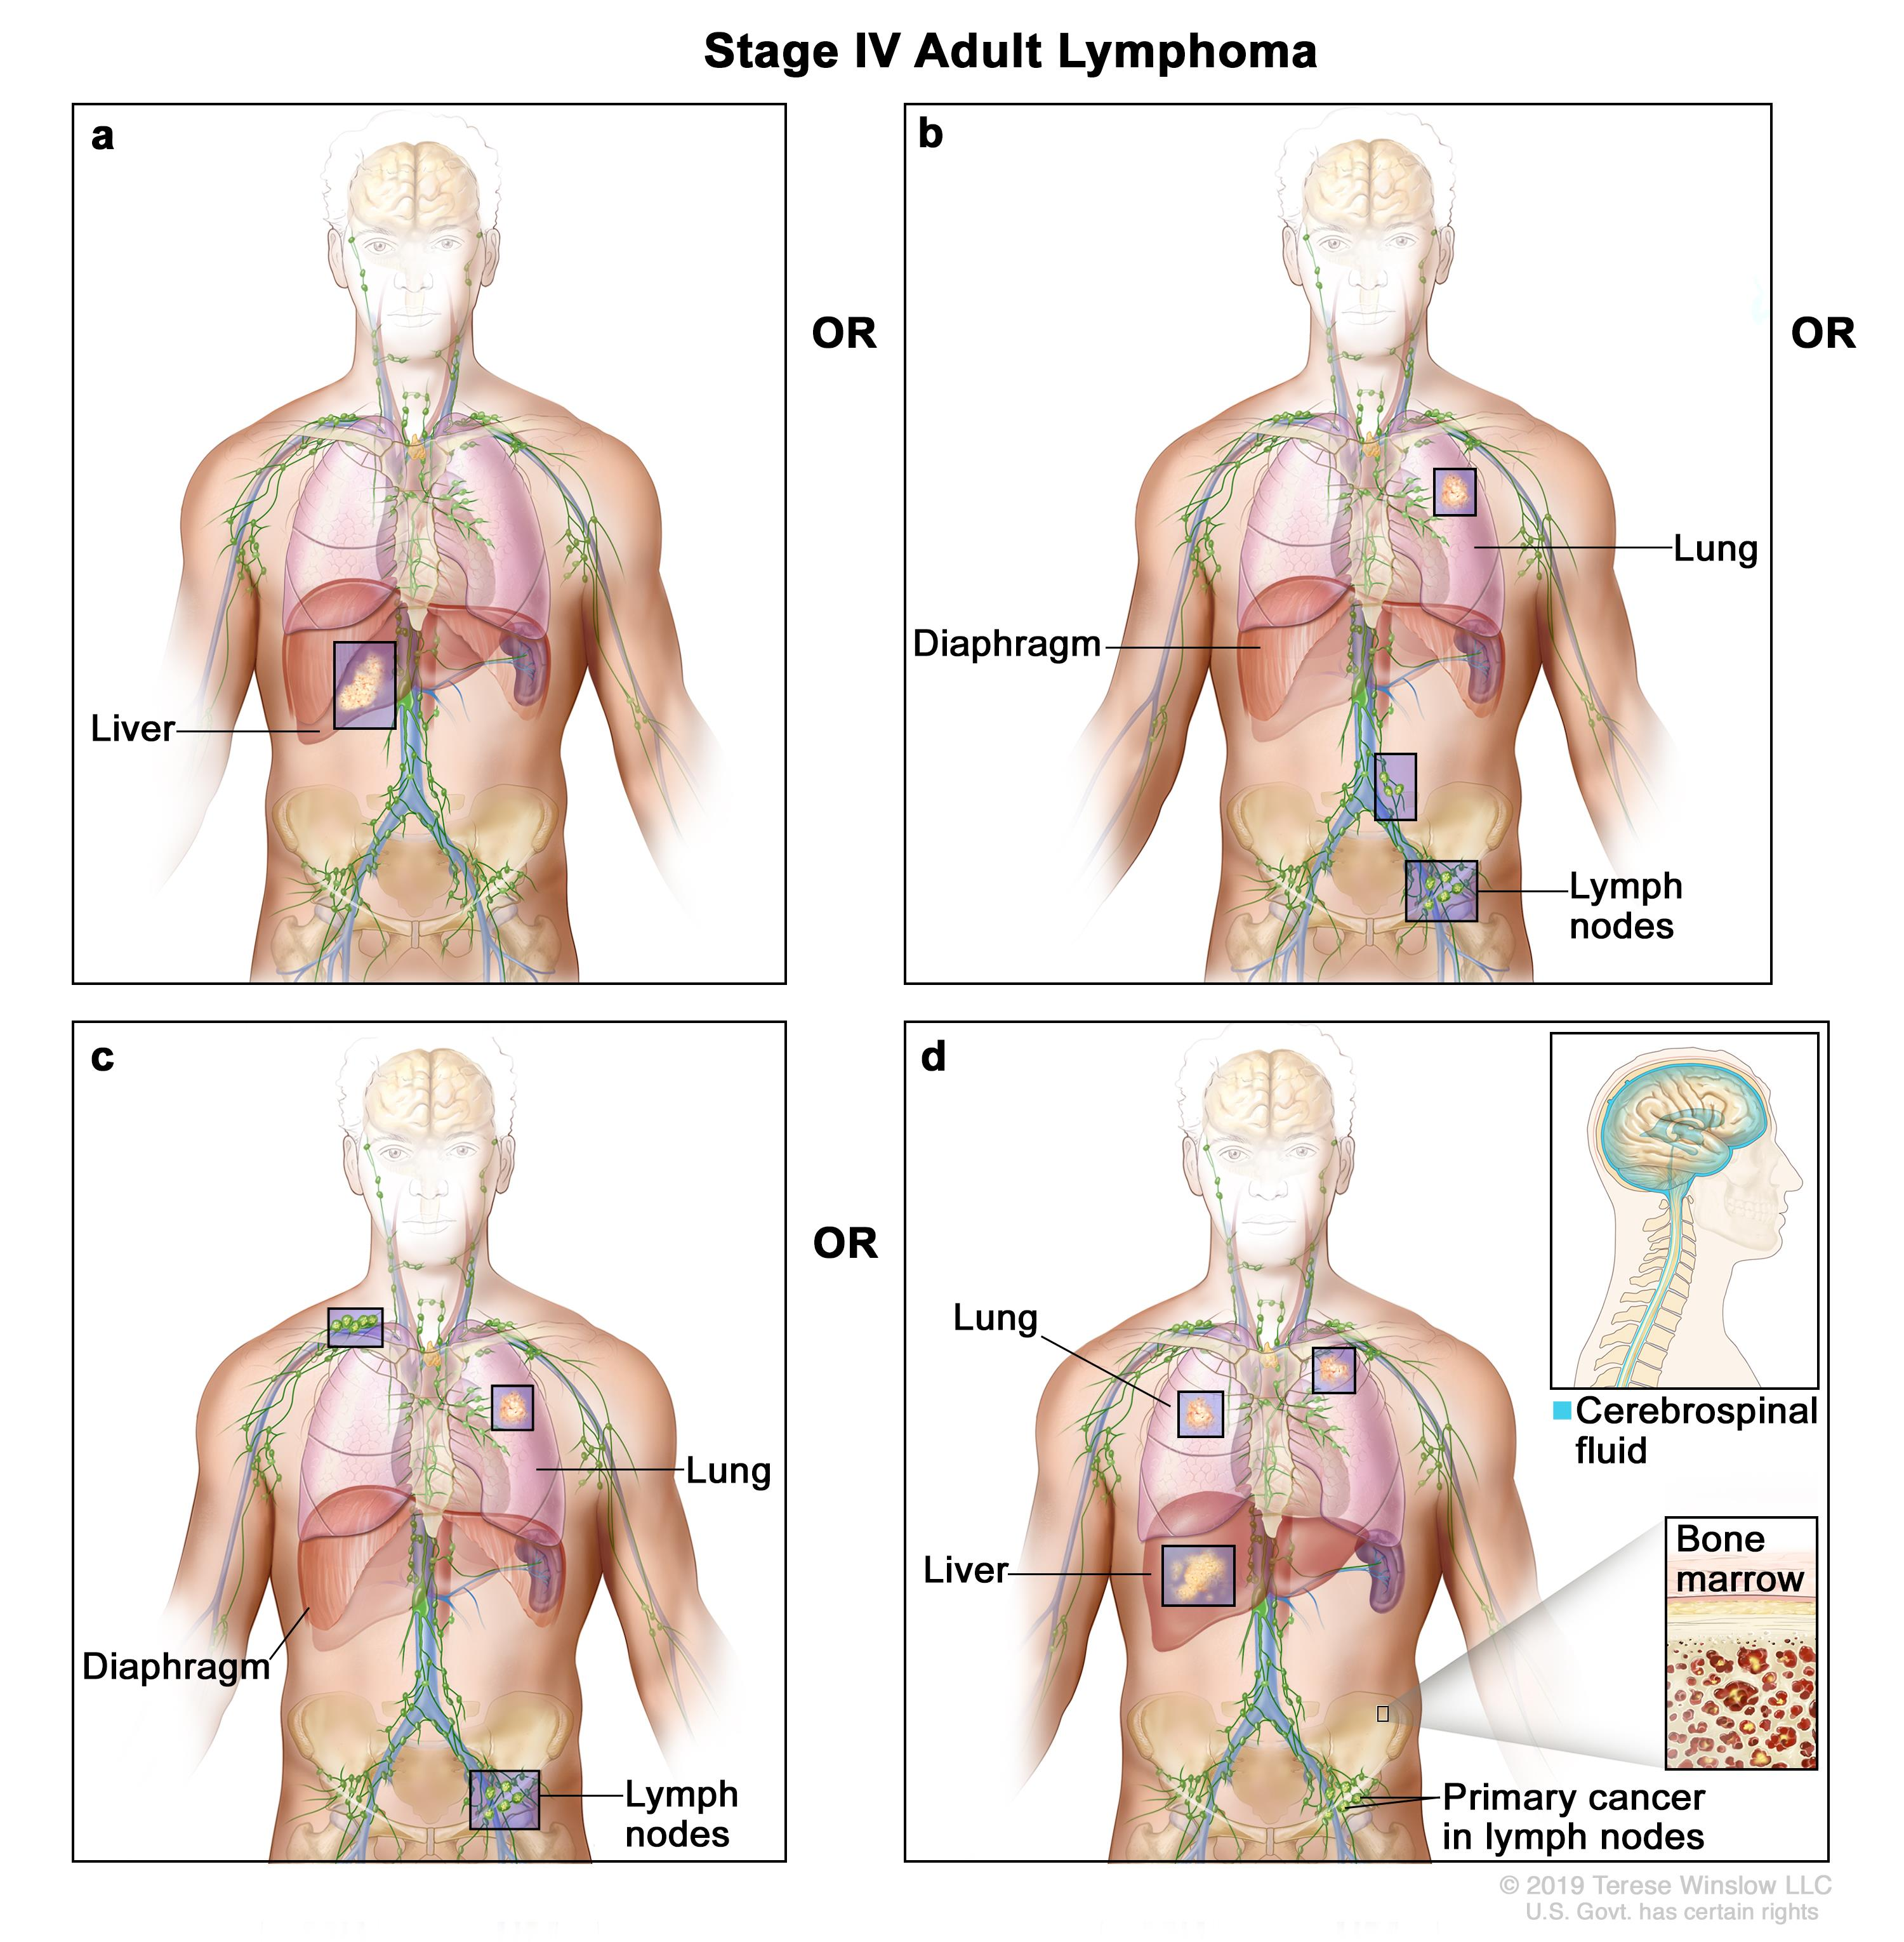 aggressive cancer in lymph nodes hpv virus rectal cancer